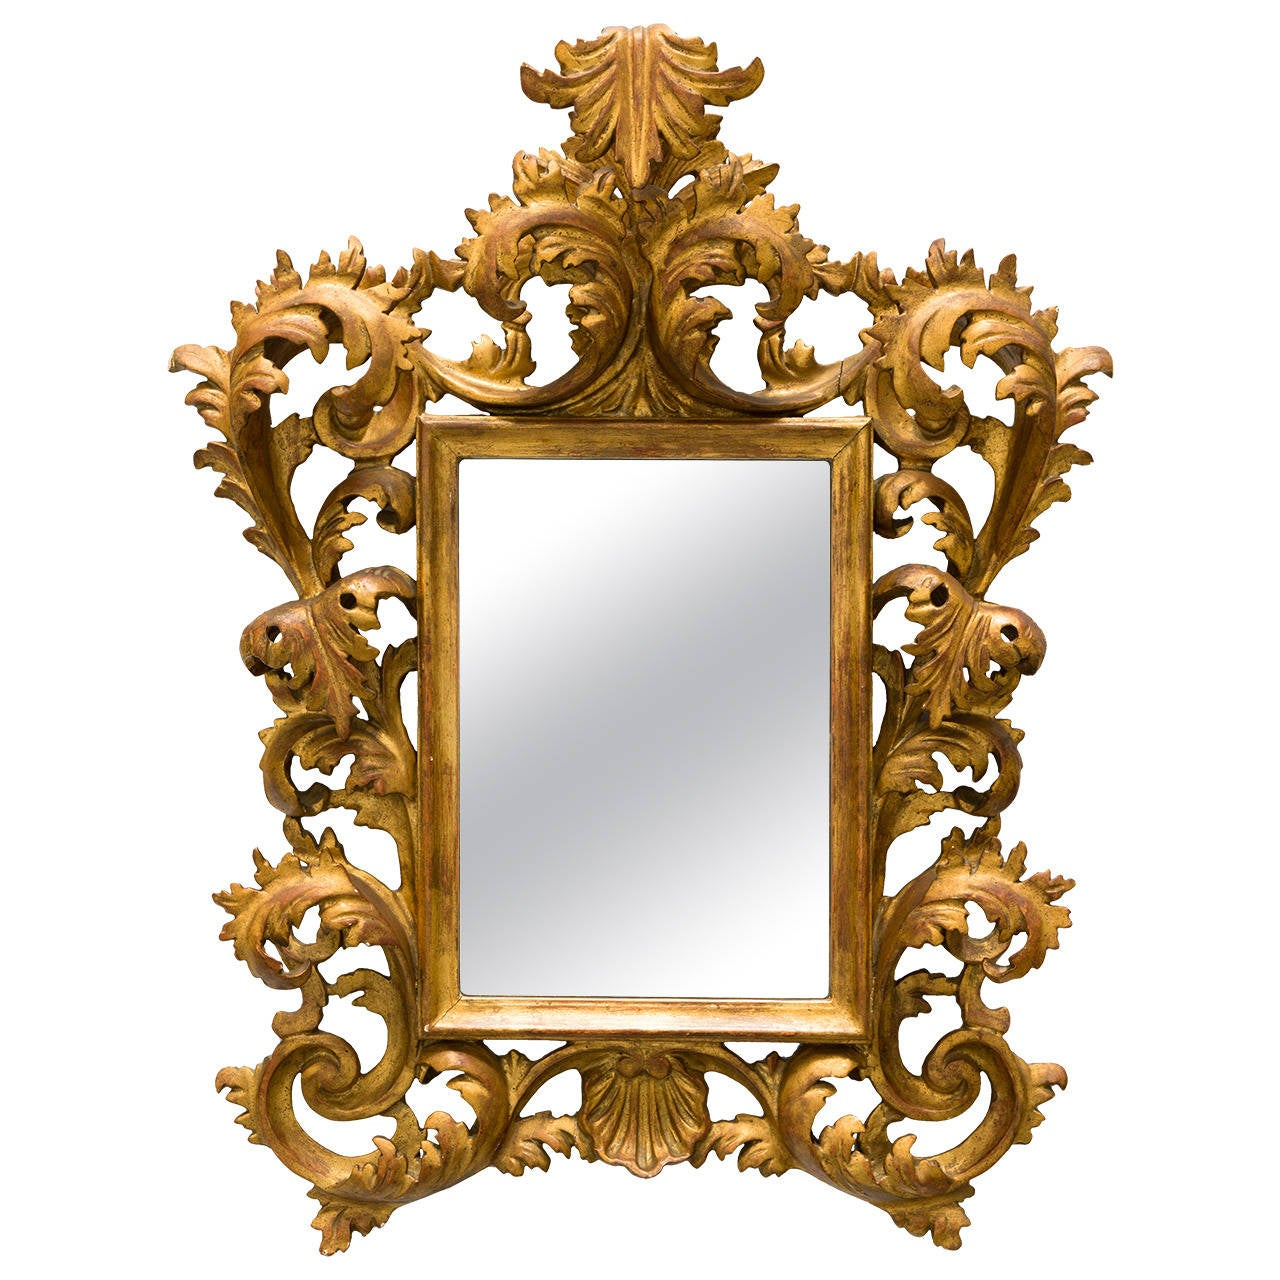 French giltwood rococo style wall mirror for sale at 1stdibs for French mirror